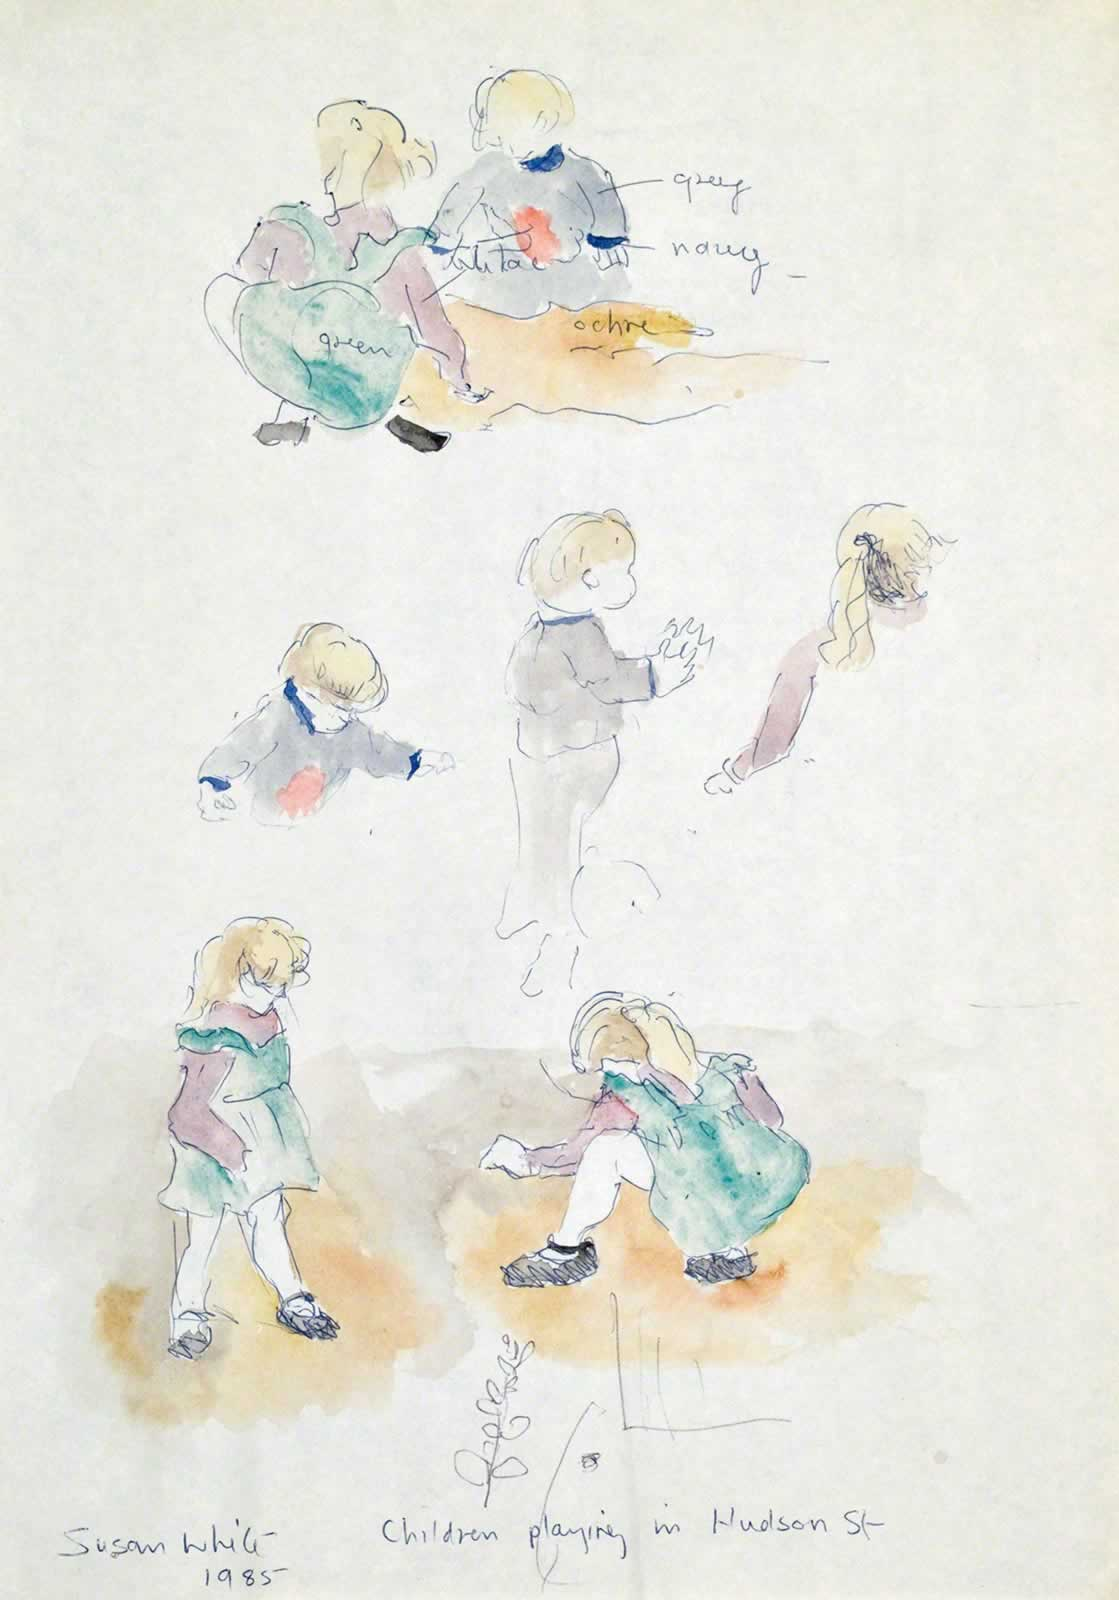 Sketch: Children Playing in Clay, Hudson St, Annandale by Susan Dorothea White